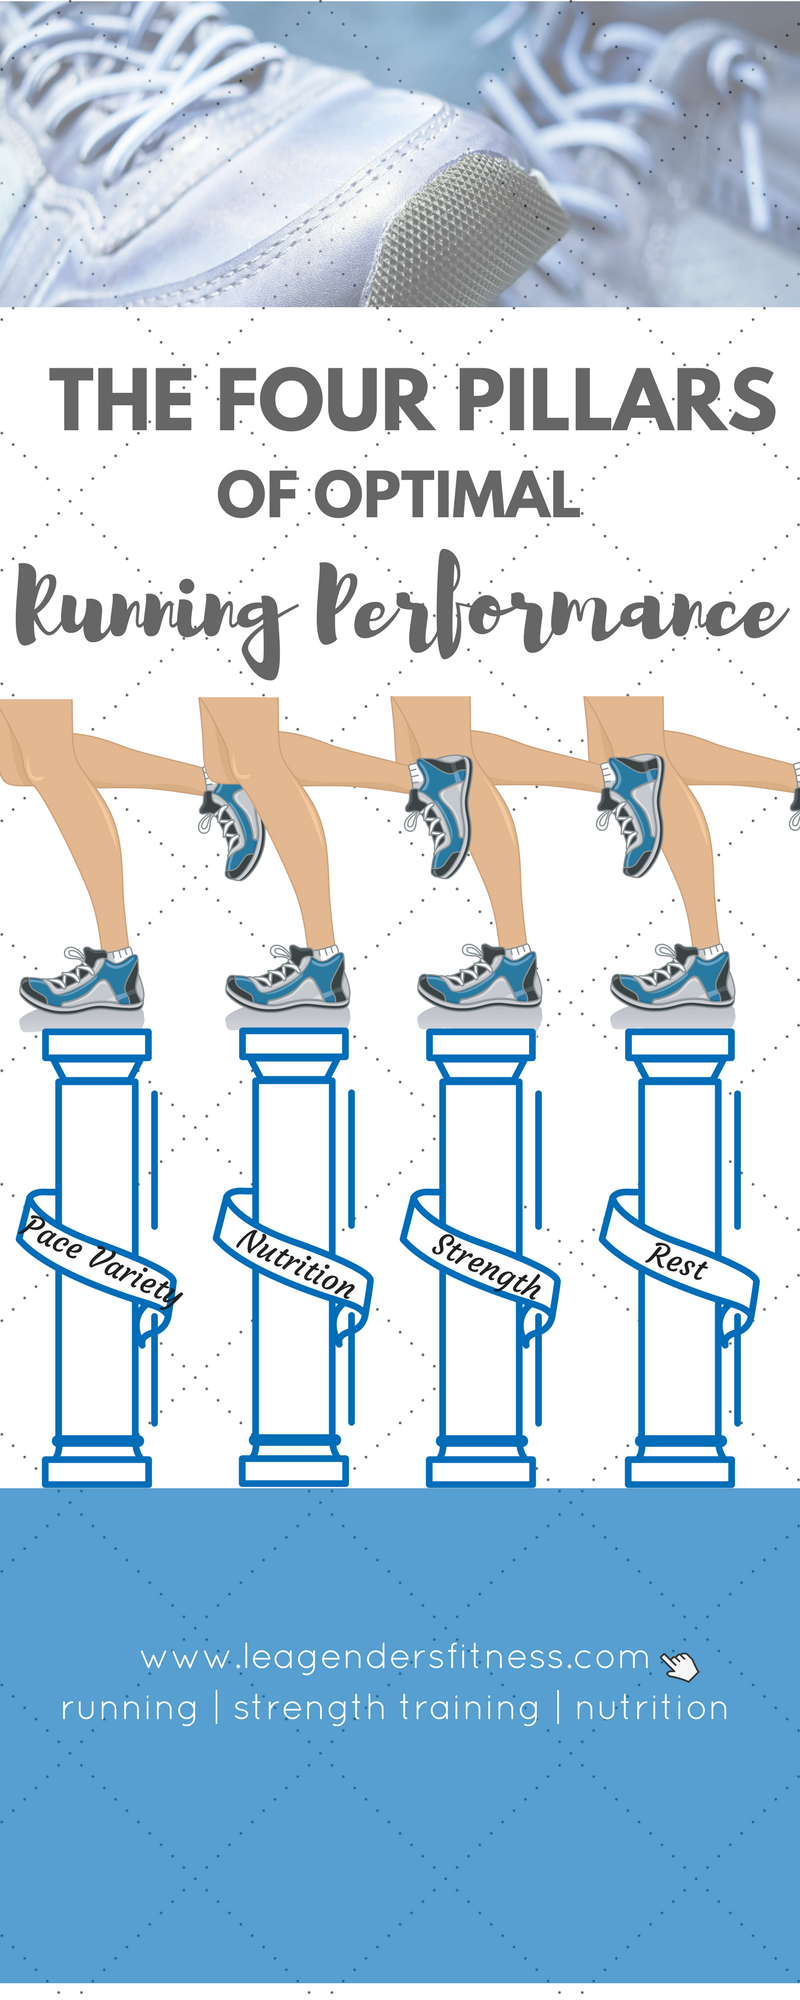 the four pillars of optimal running performance. save to pinterest for later